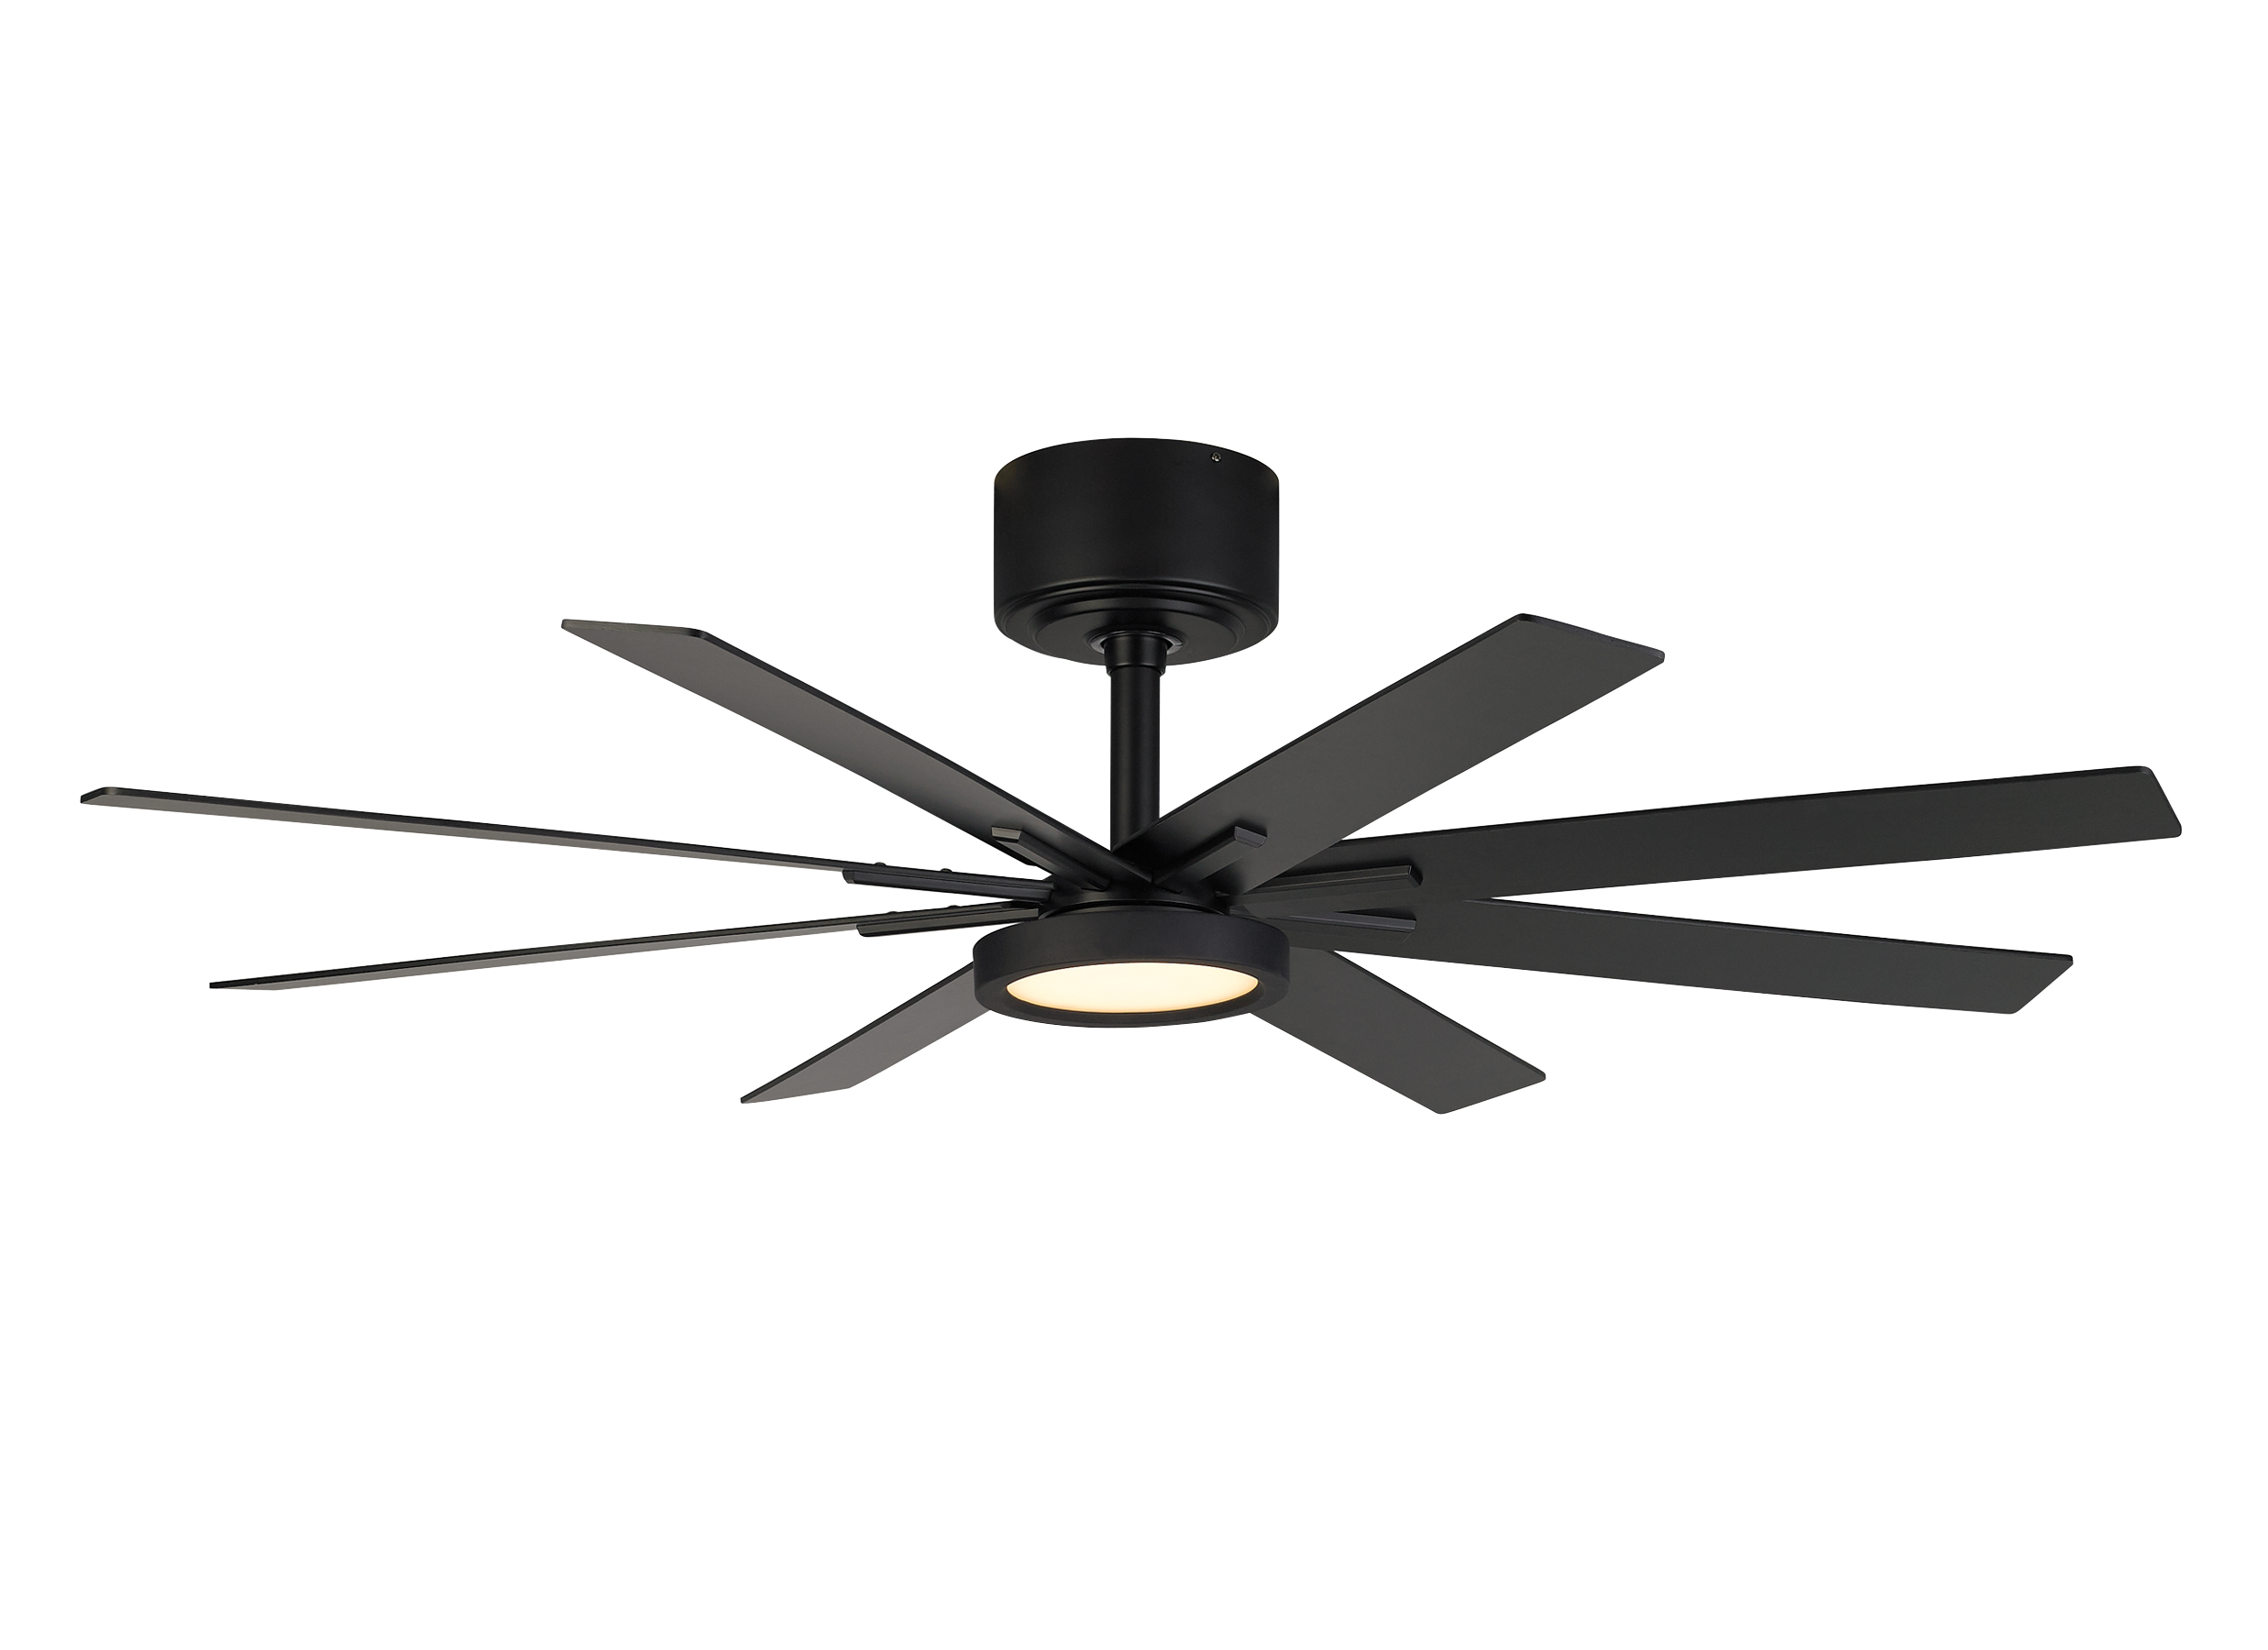 fan emerson lights carrera youtube in watch fans inch with ceiling review